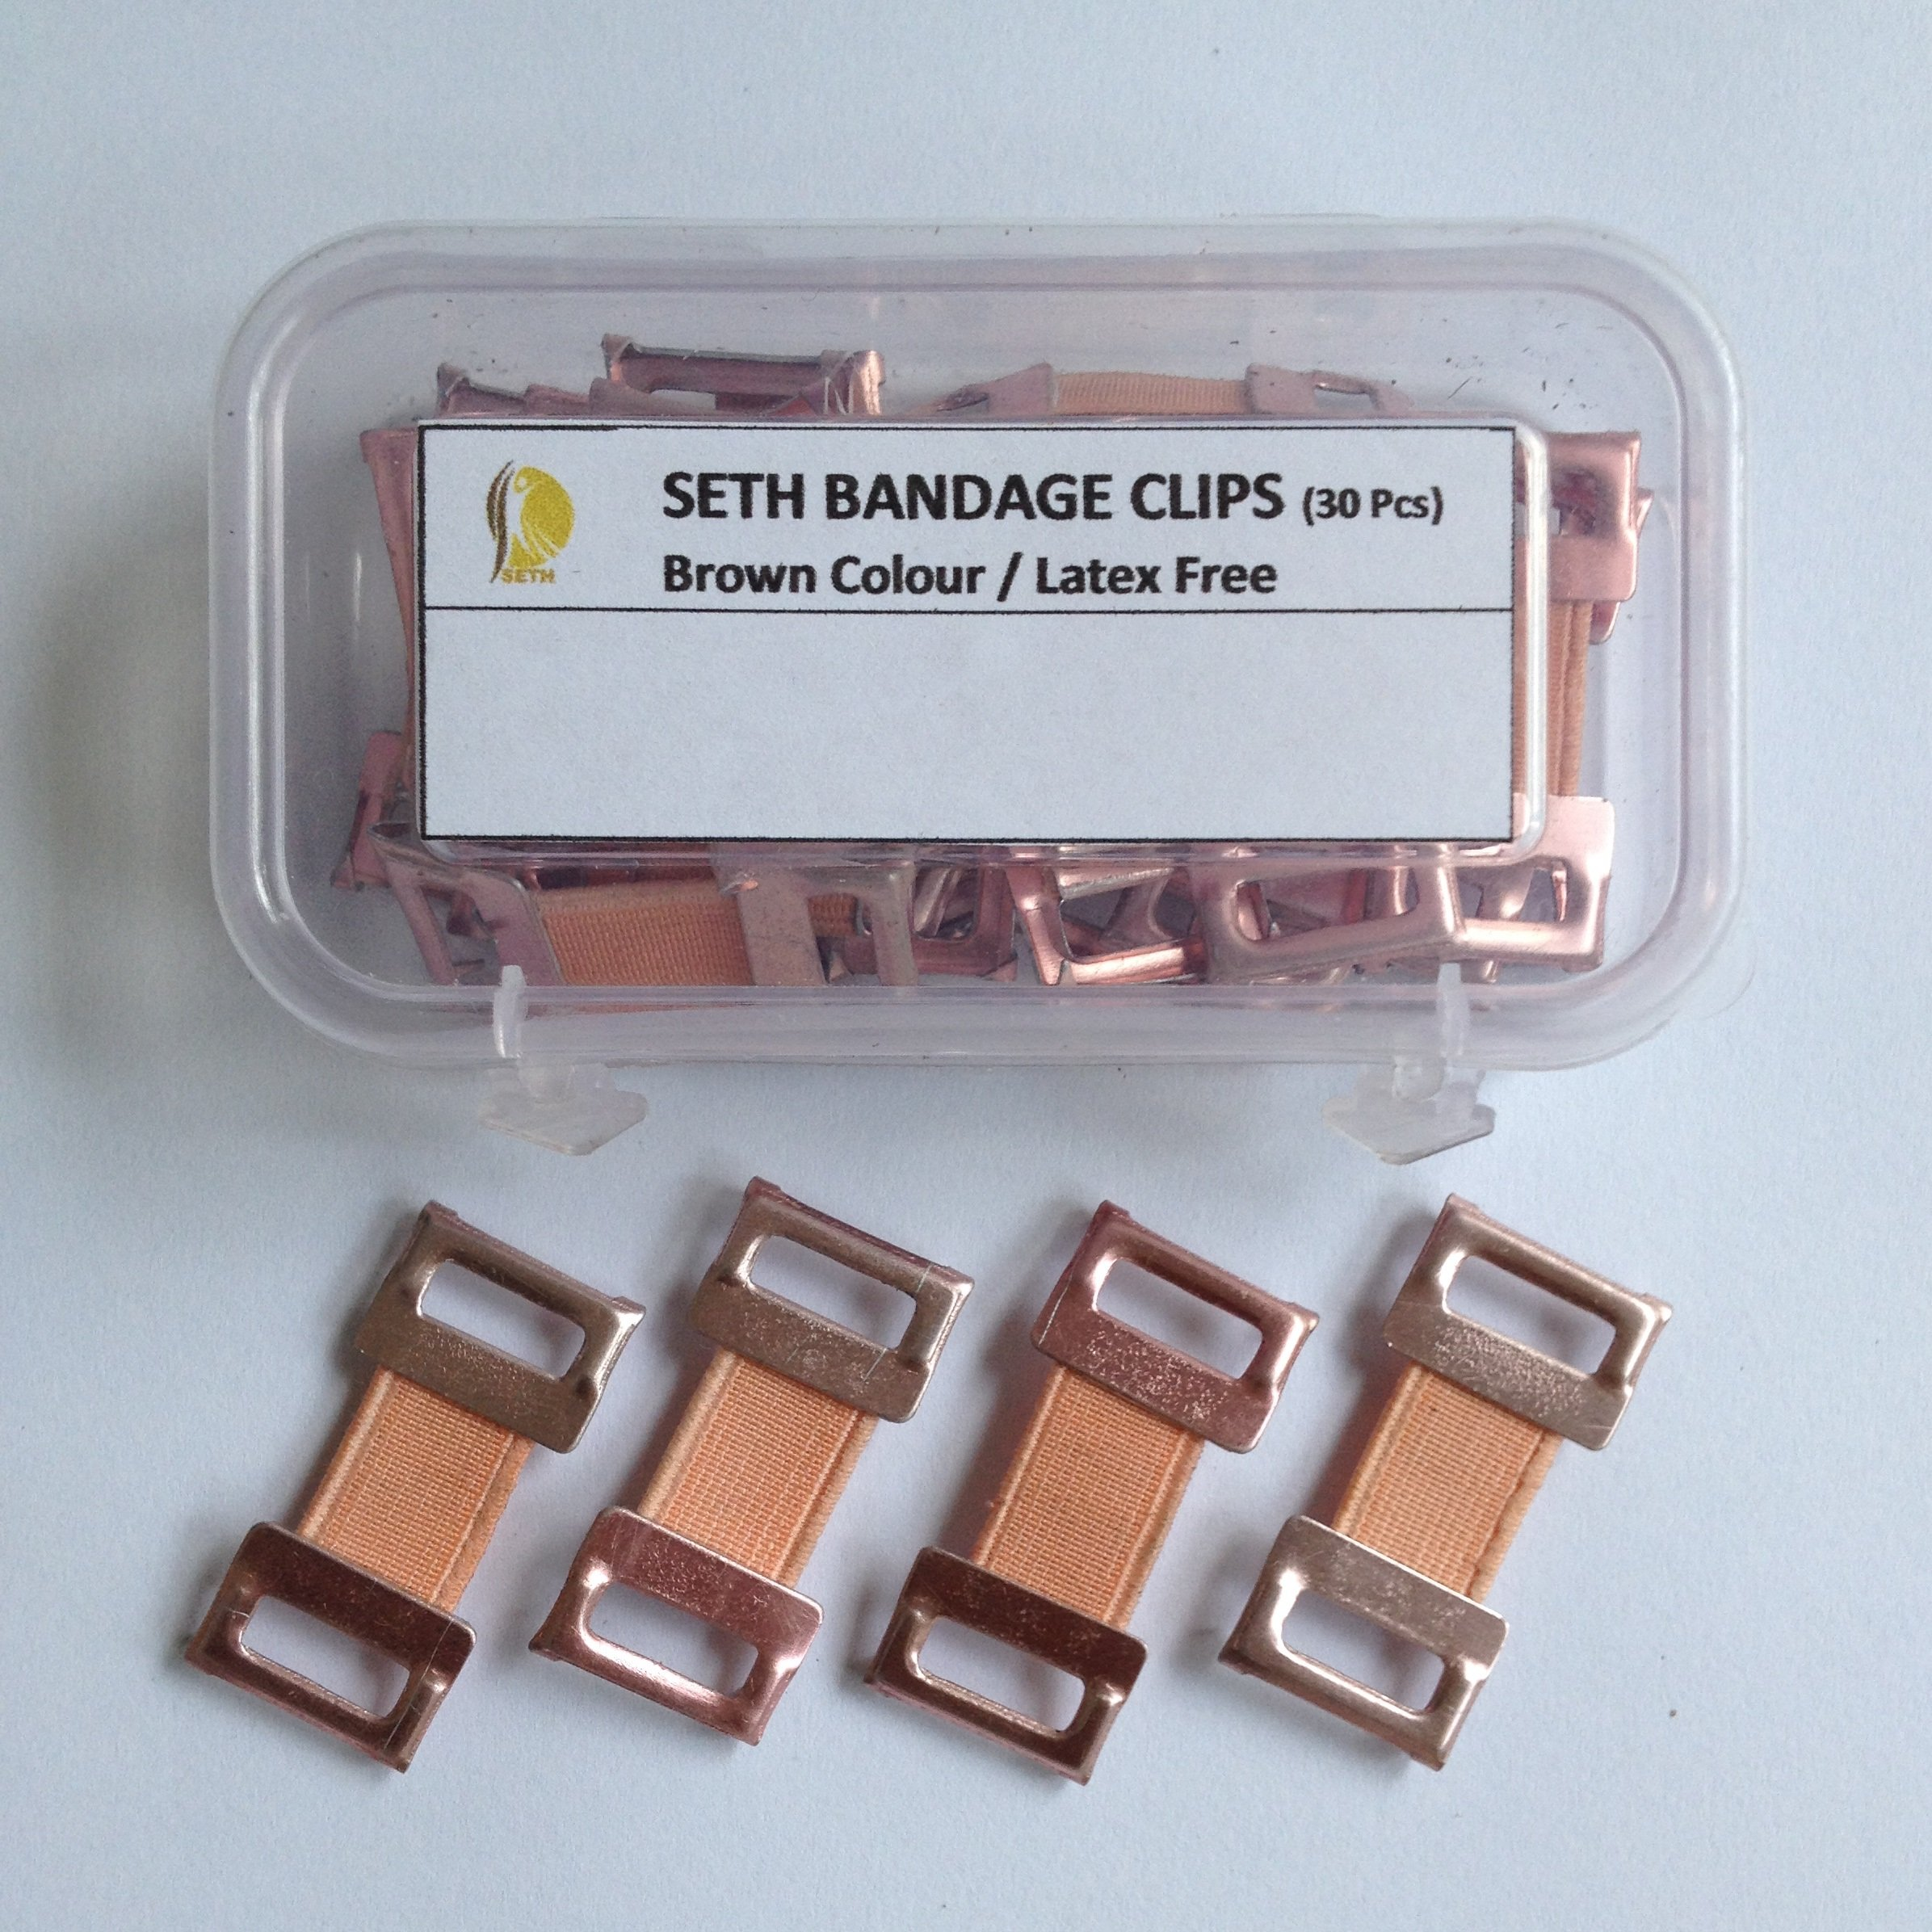 Seth-Premium Quality Replacement Elastic Bandage Clips for Elastic Bandages,Compression Bandages,Crepe Bandages,Cotton Bandages,Body Wrap Clips-Secure Elastic Fastener Clips (Pack of 30 Clips). by SETH (Image #1)